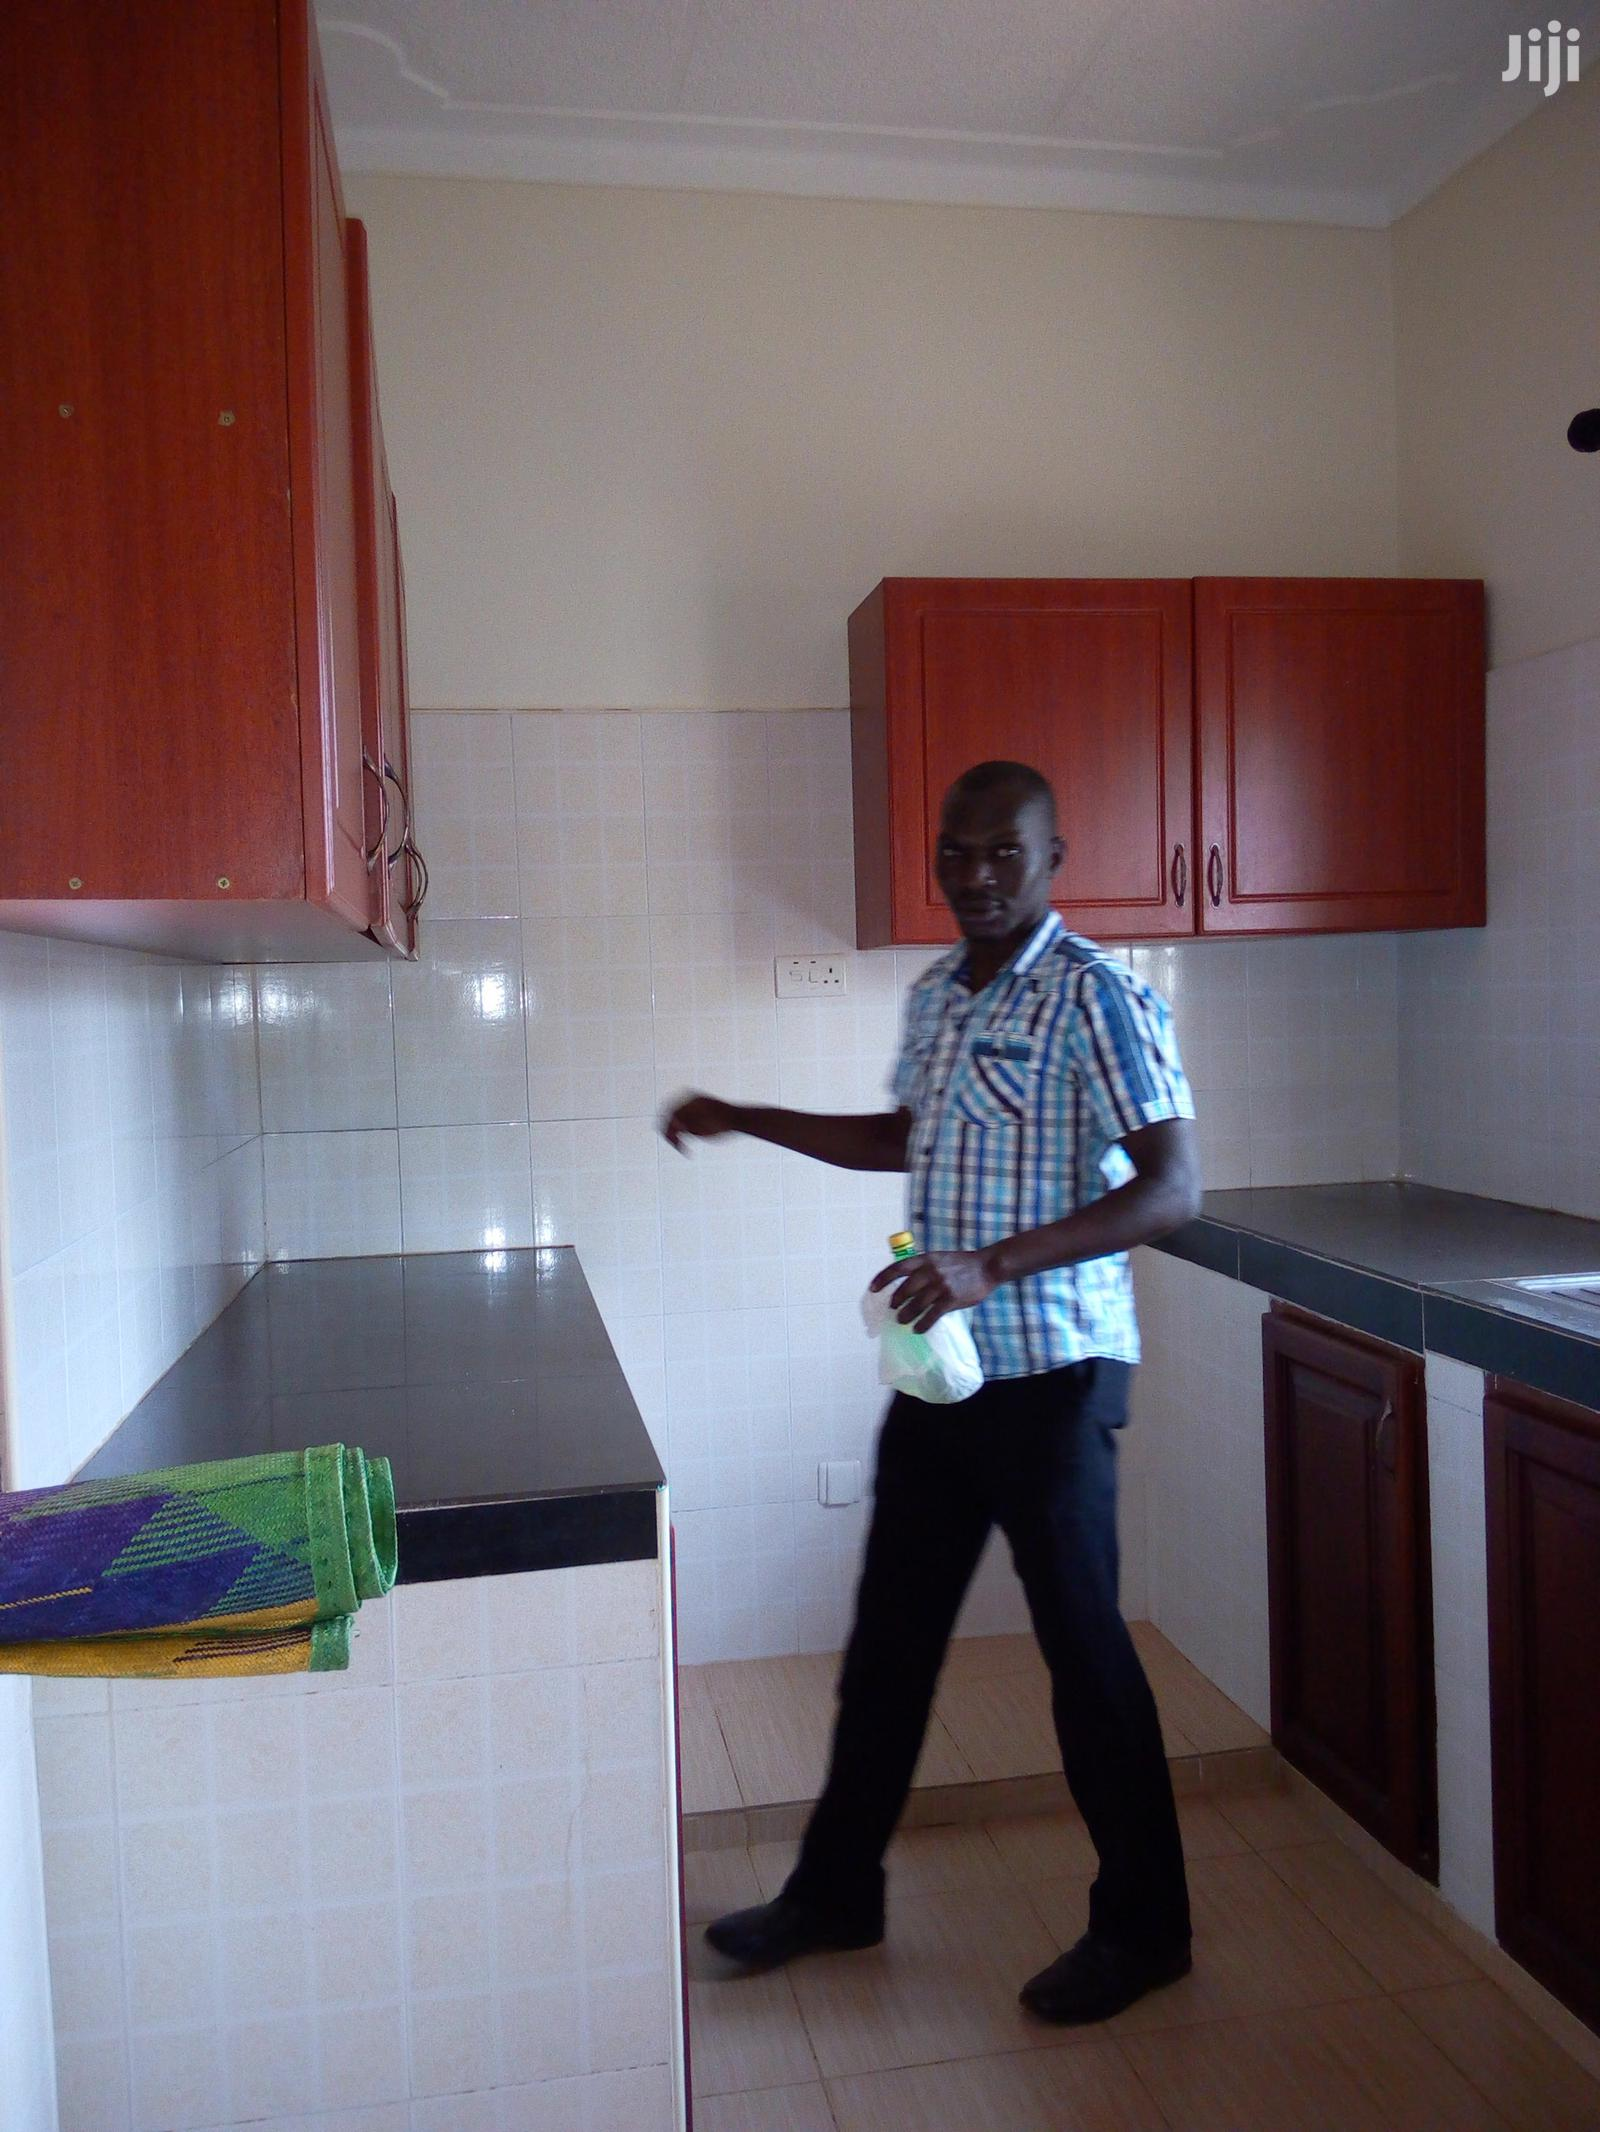 Najjera Executive Self Contained Double Room House For Rent | Houses & Apartments For Rent for sale in Kampala, Central Region, Uganda